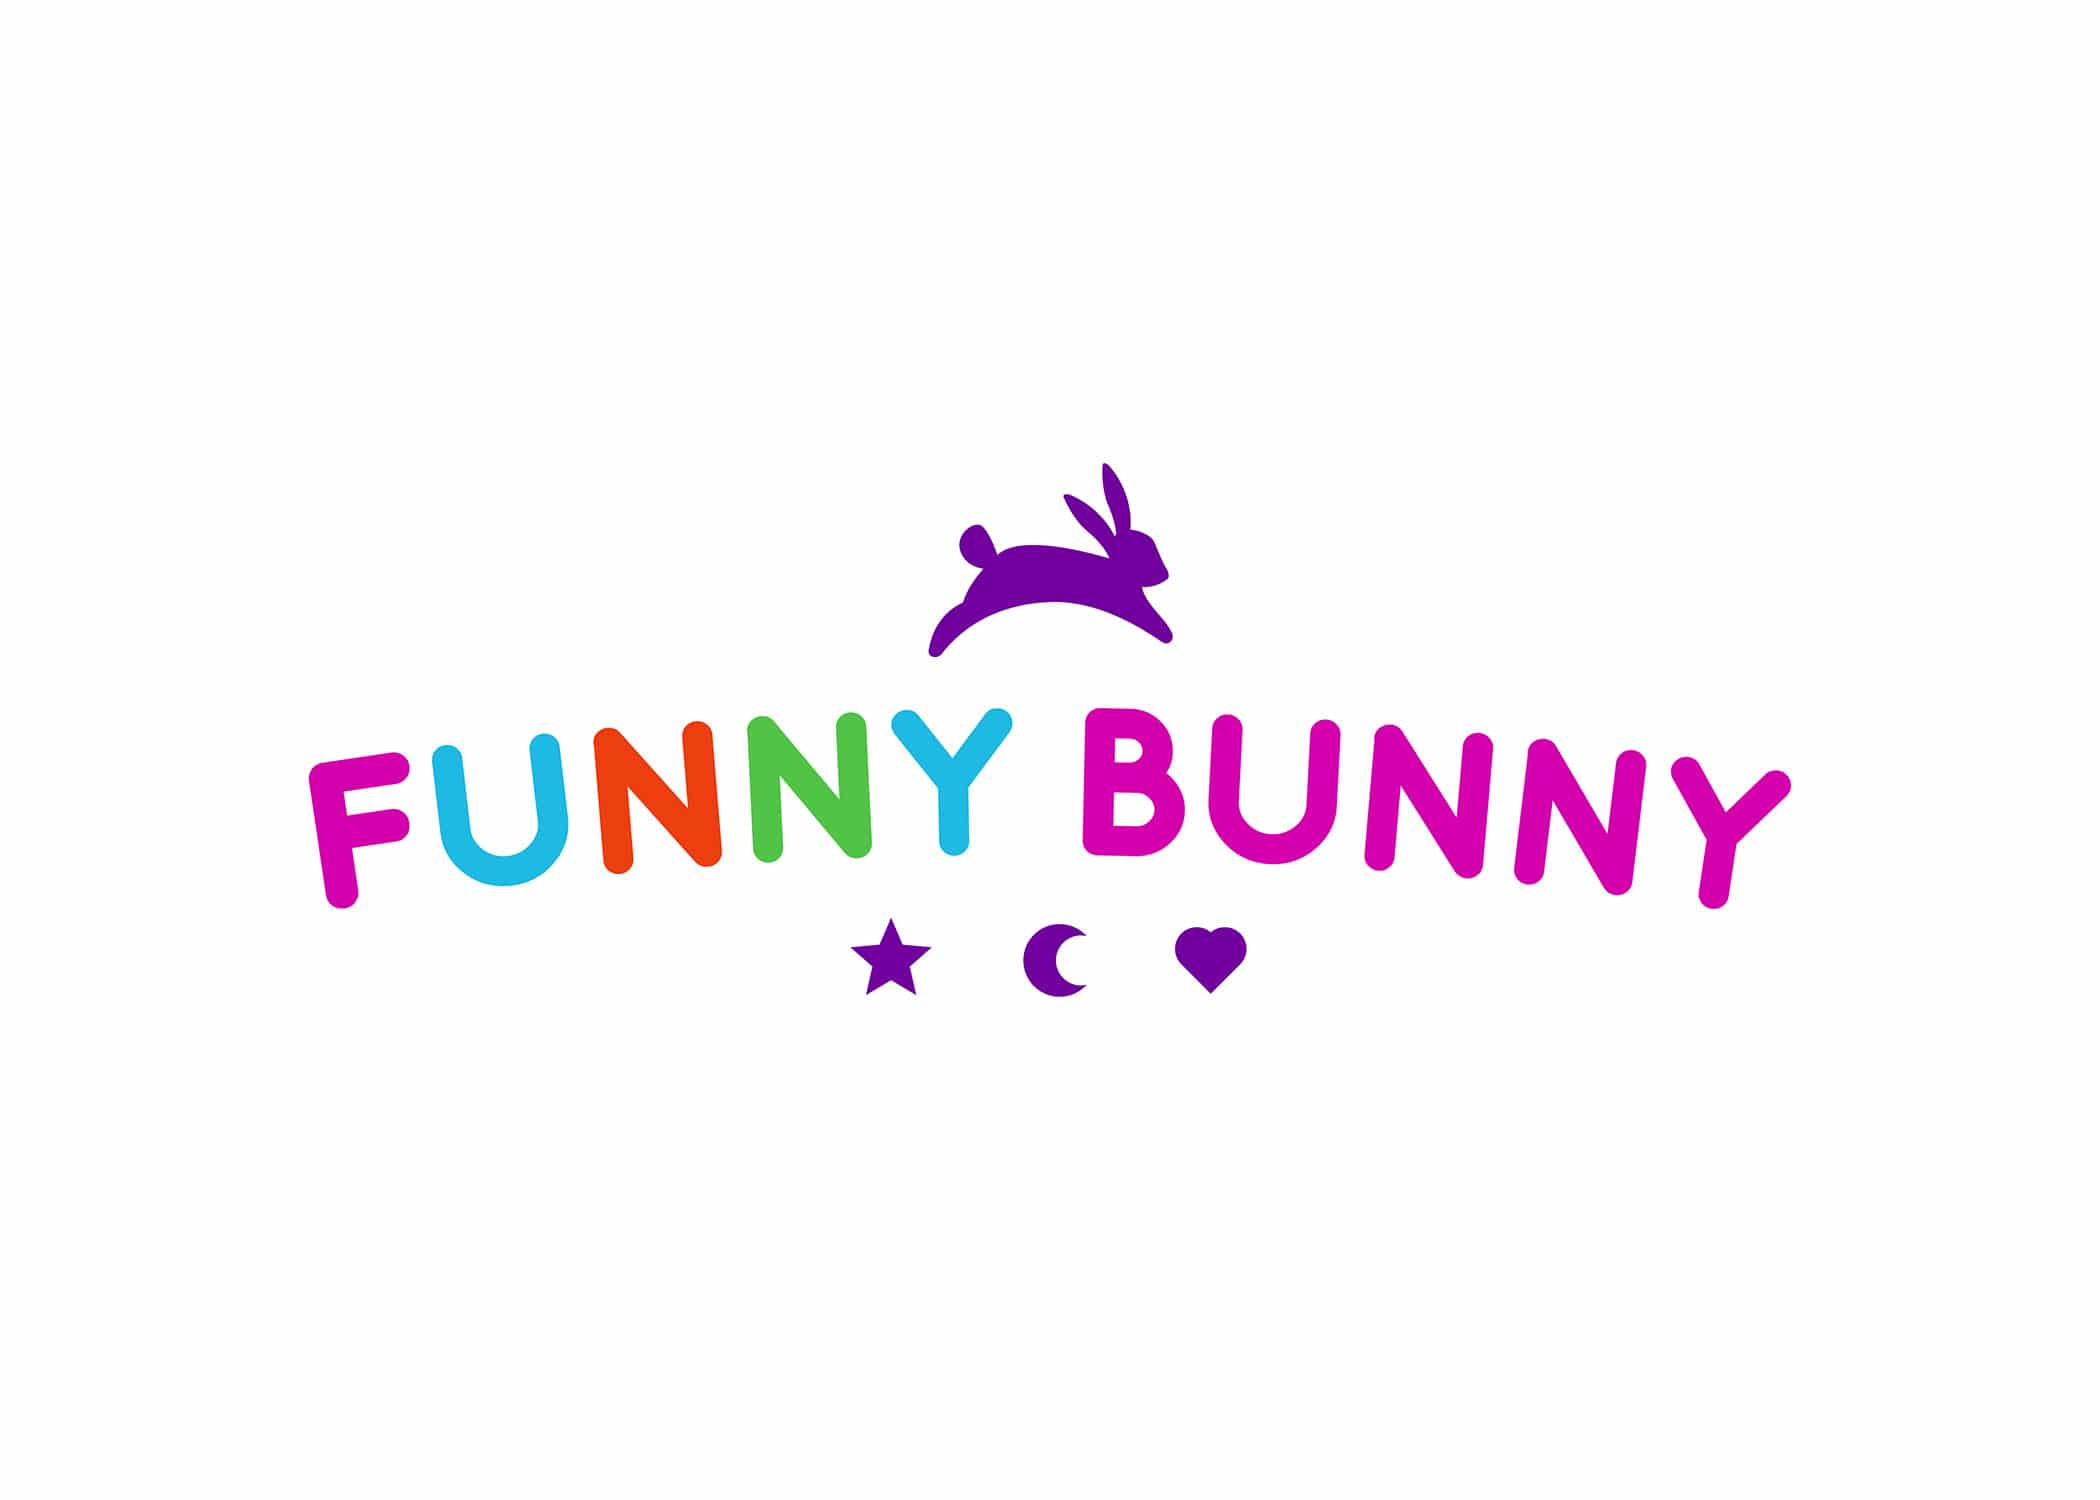 Funny Bunny logo with bright fuschia, purple, blue, orange, green brand colors, and a hopping bunny icon above text.